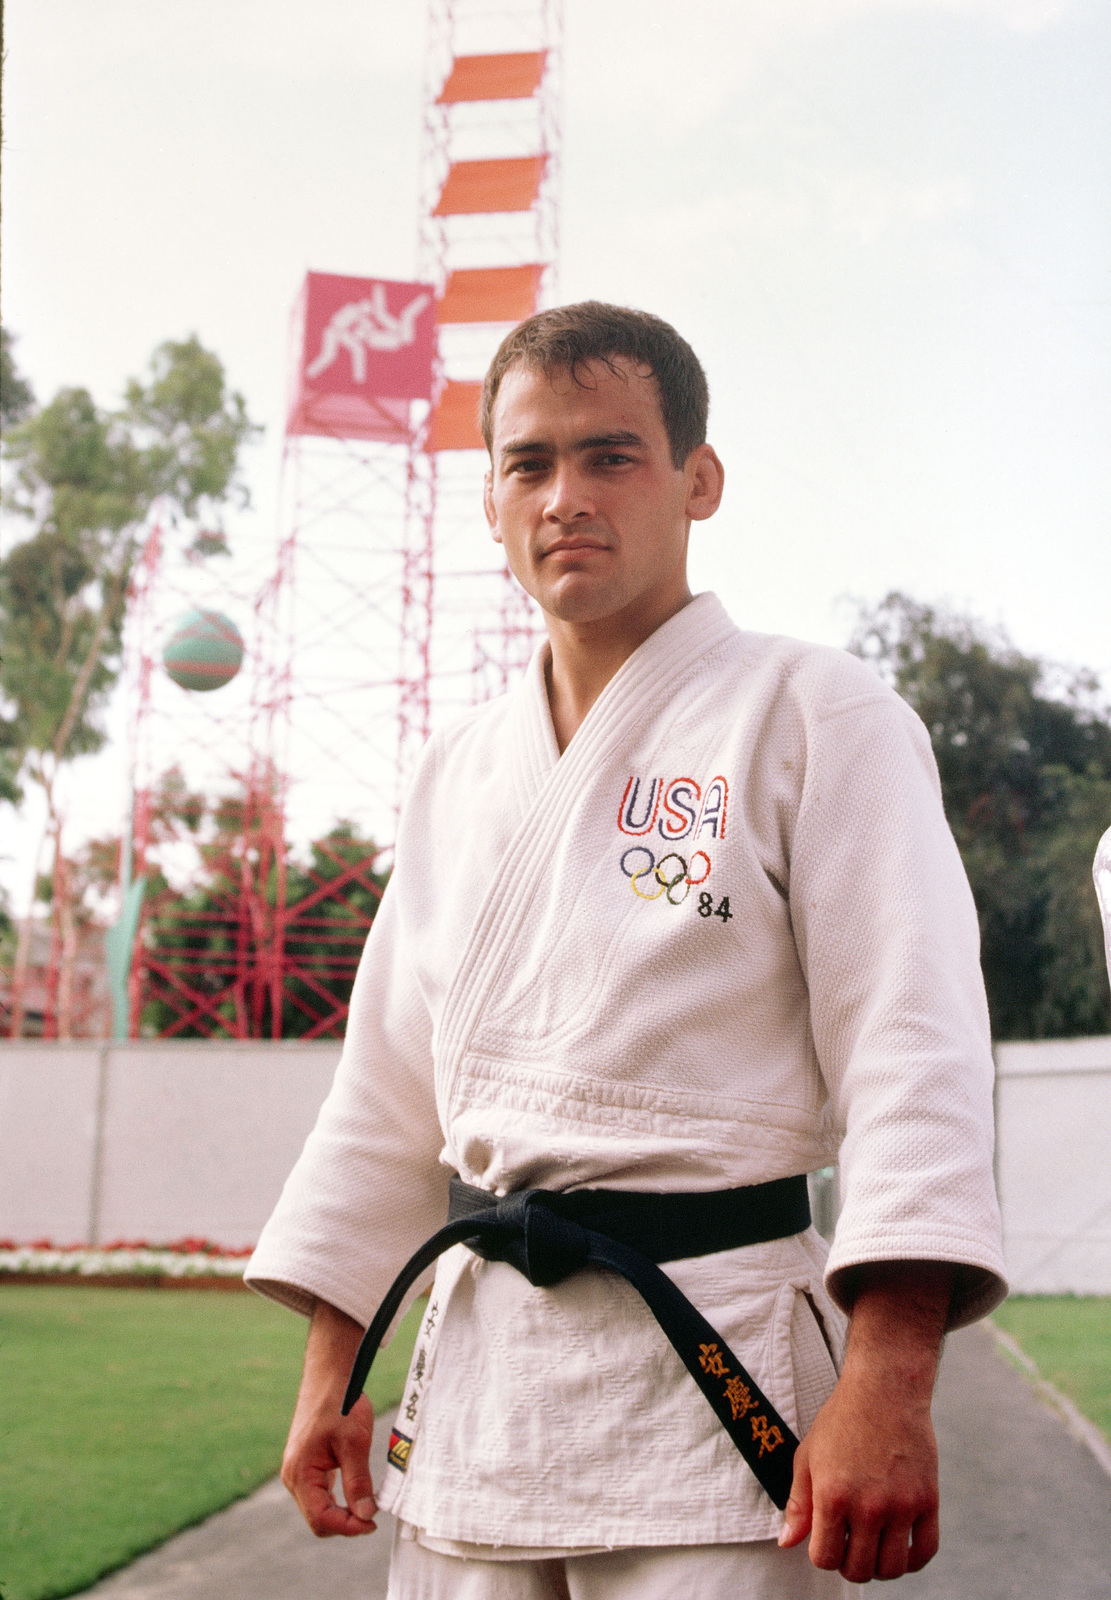 Second Lieutenat Craig J. Agena from Fort Carson, Colorado, a member of the judo team competing at the 1984 Summer Olympics